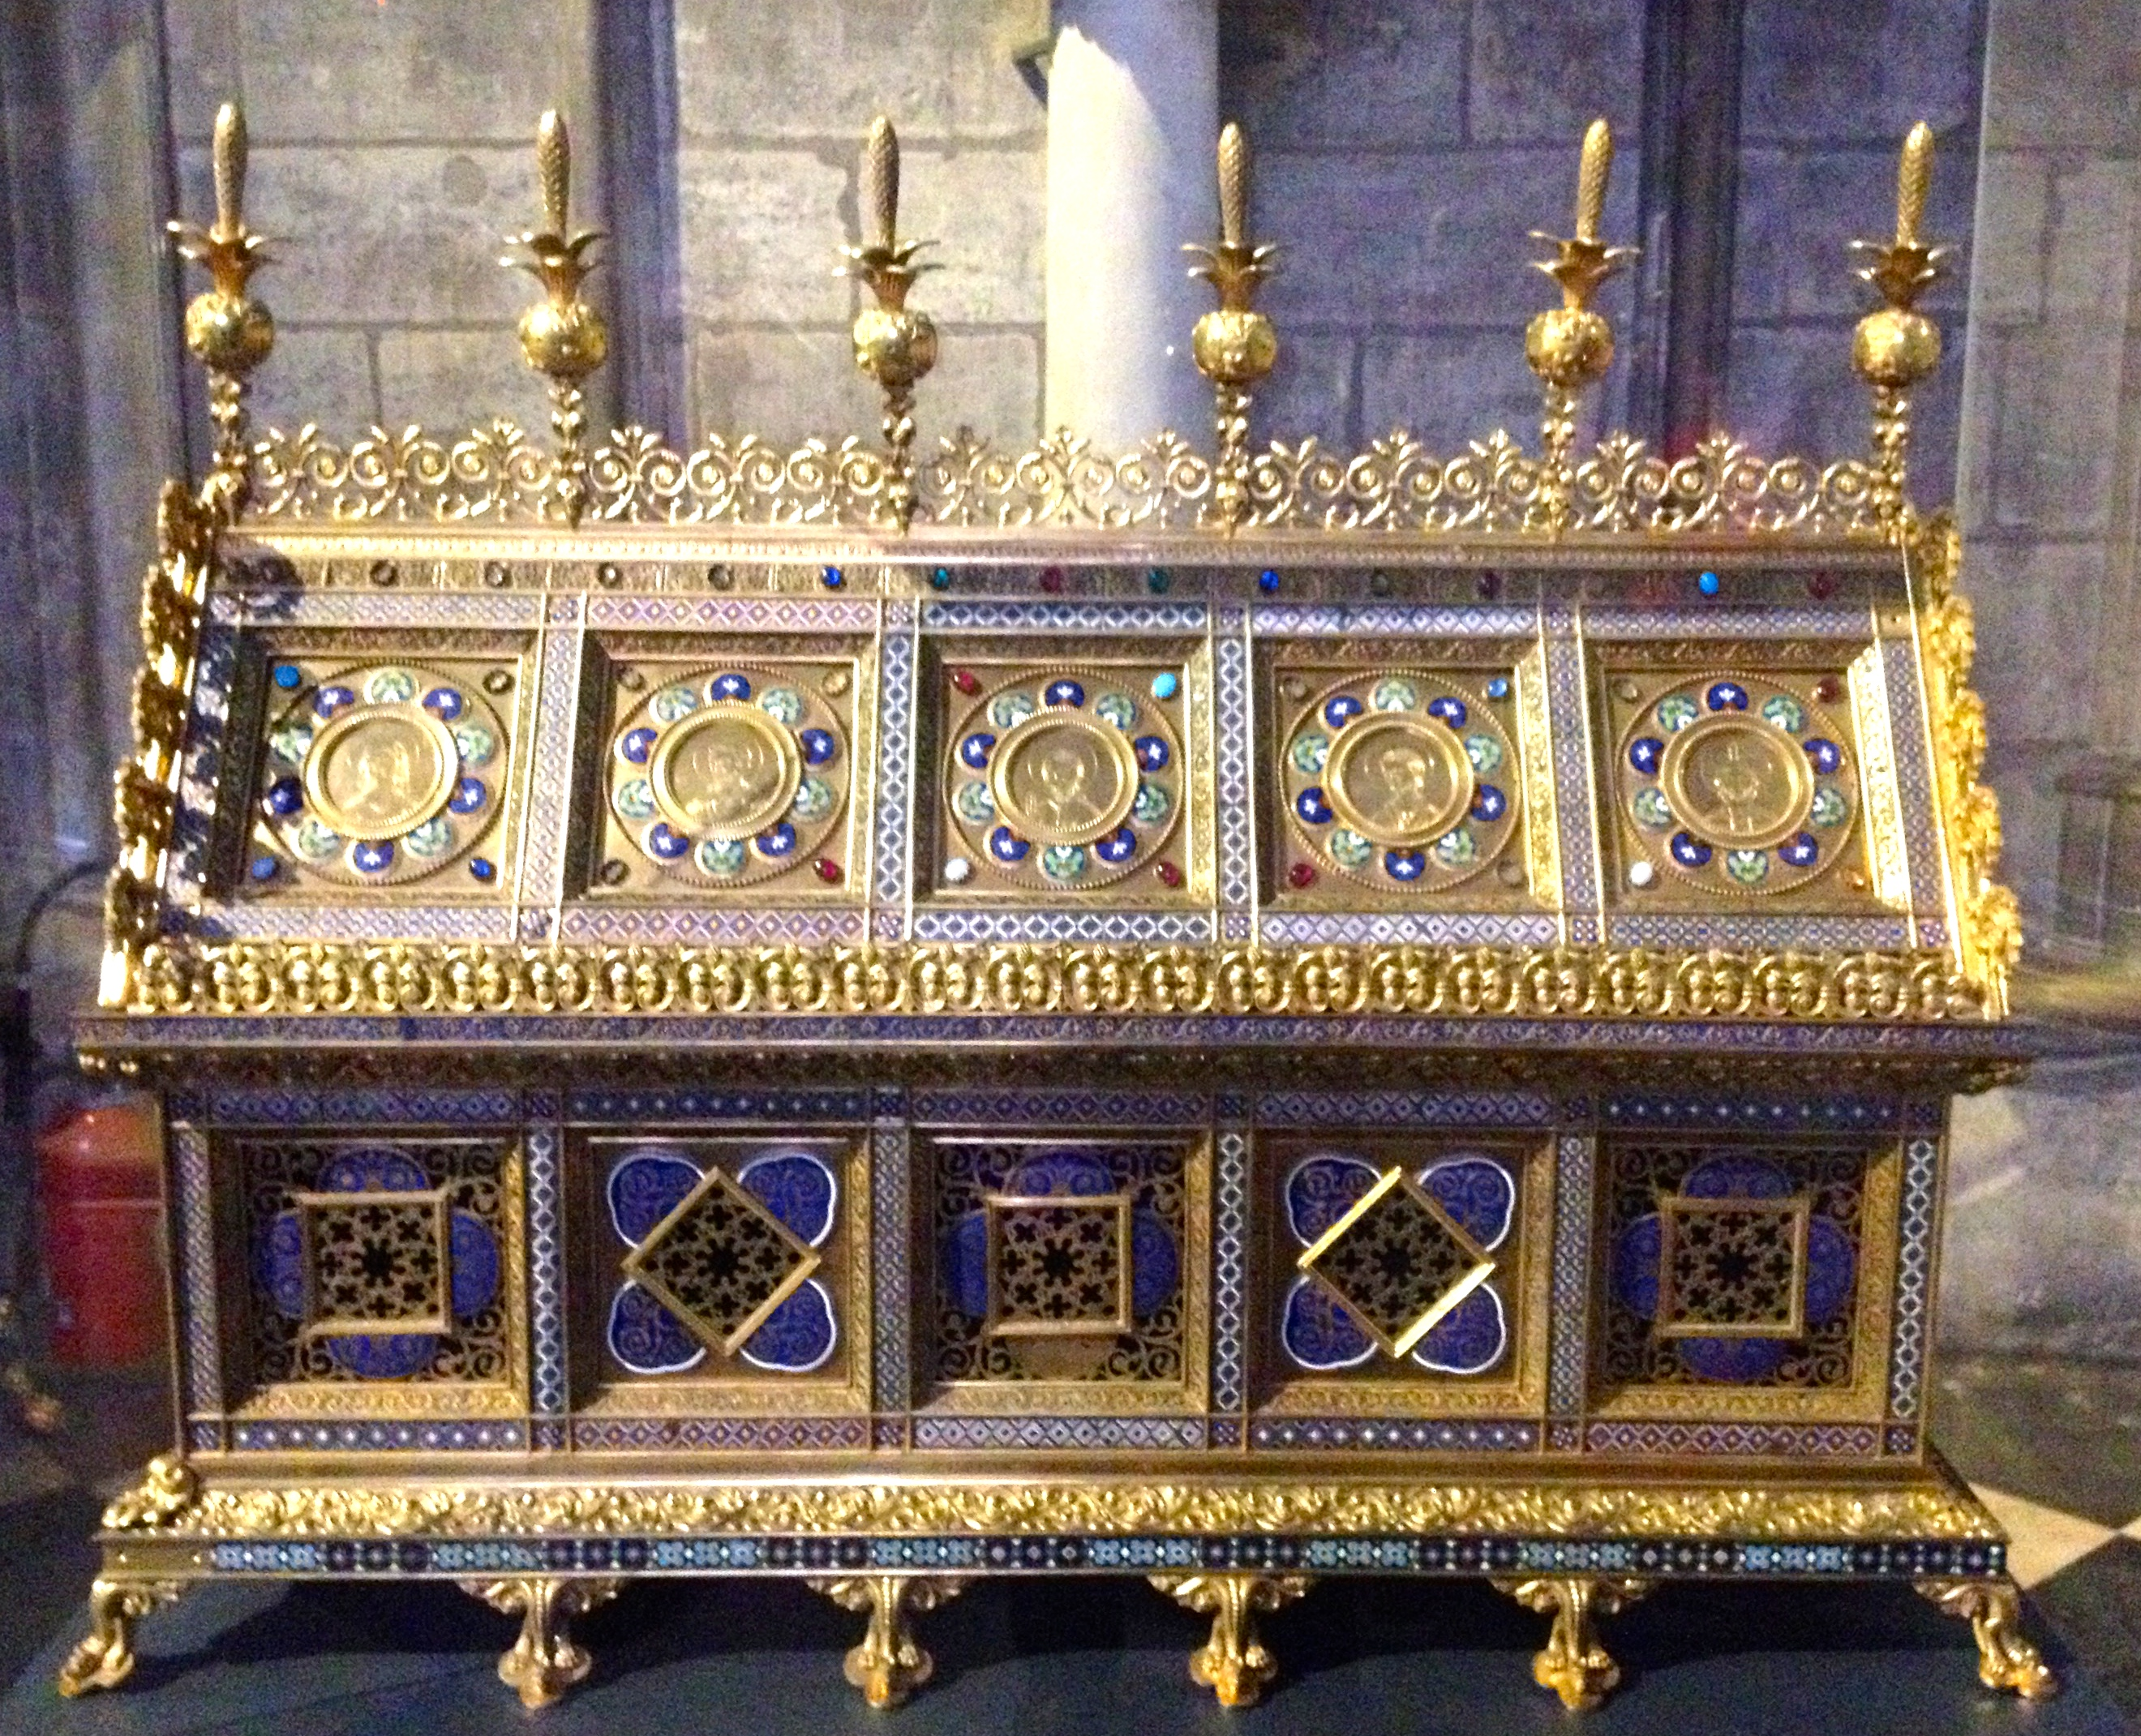 Reliquary of St. Genevieve in Notre Dame Cathedral, Paris, France.